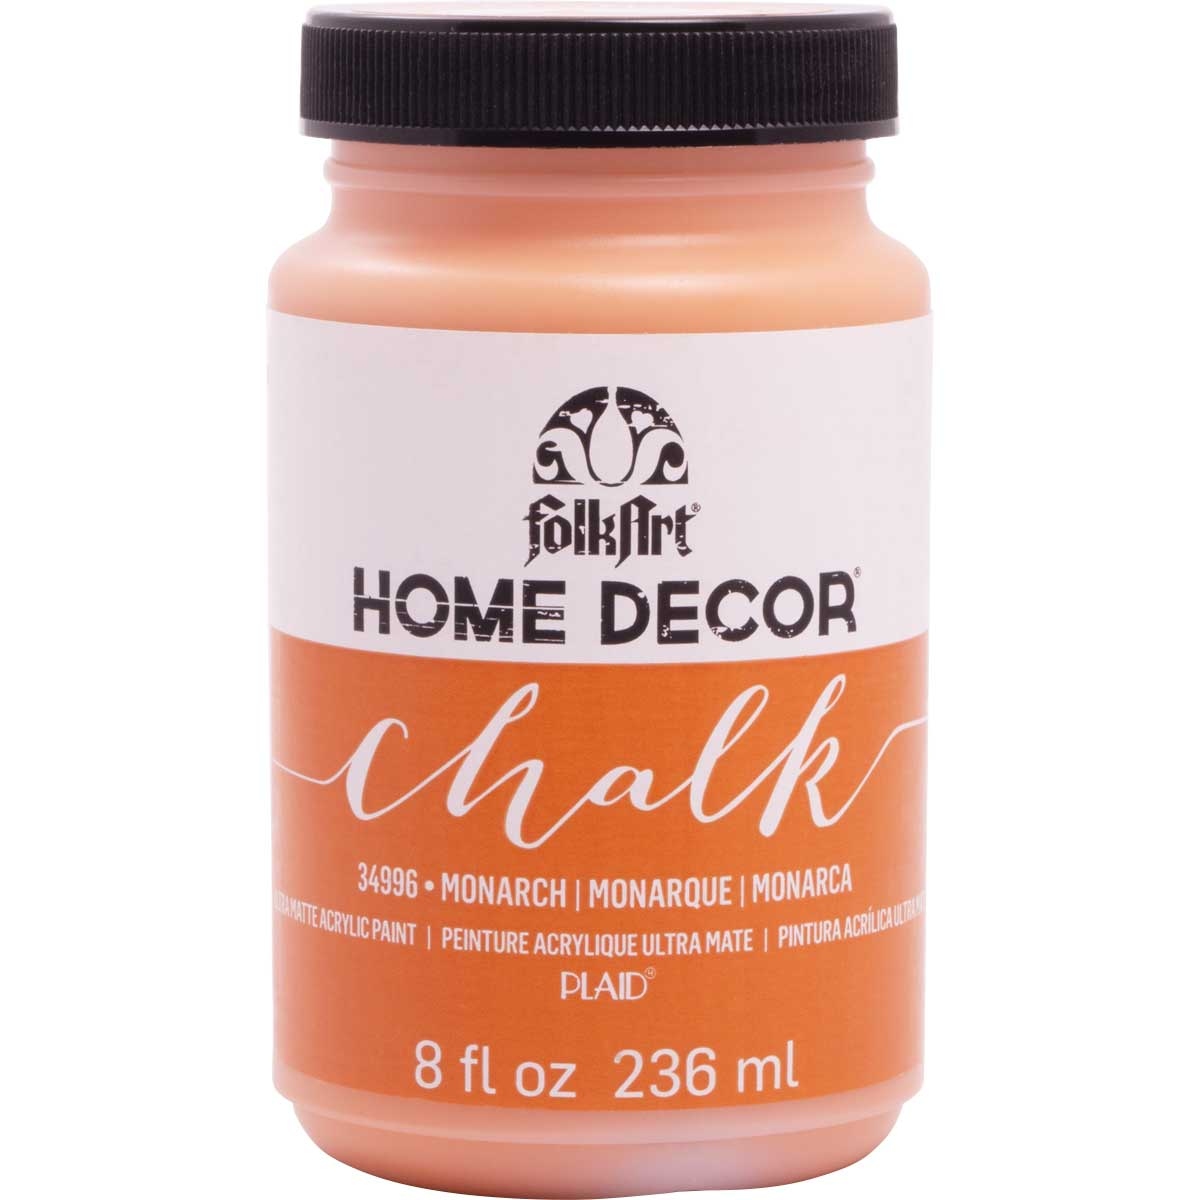 FolkArt ® Home Decor™ Chalk - Monarch, 8 oz. - 34996